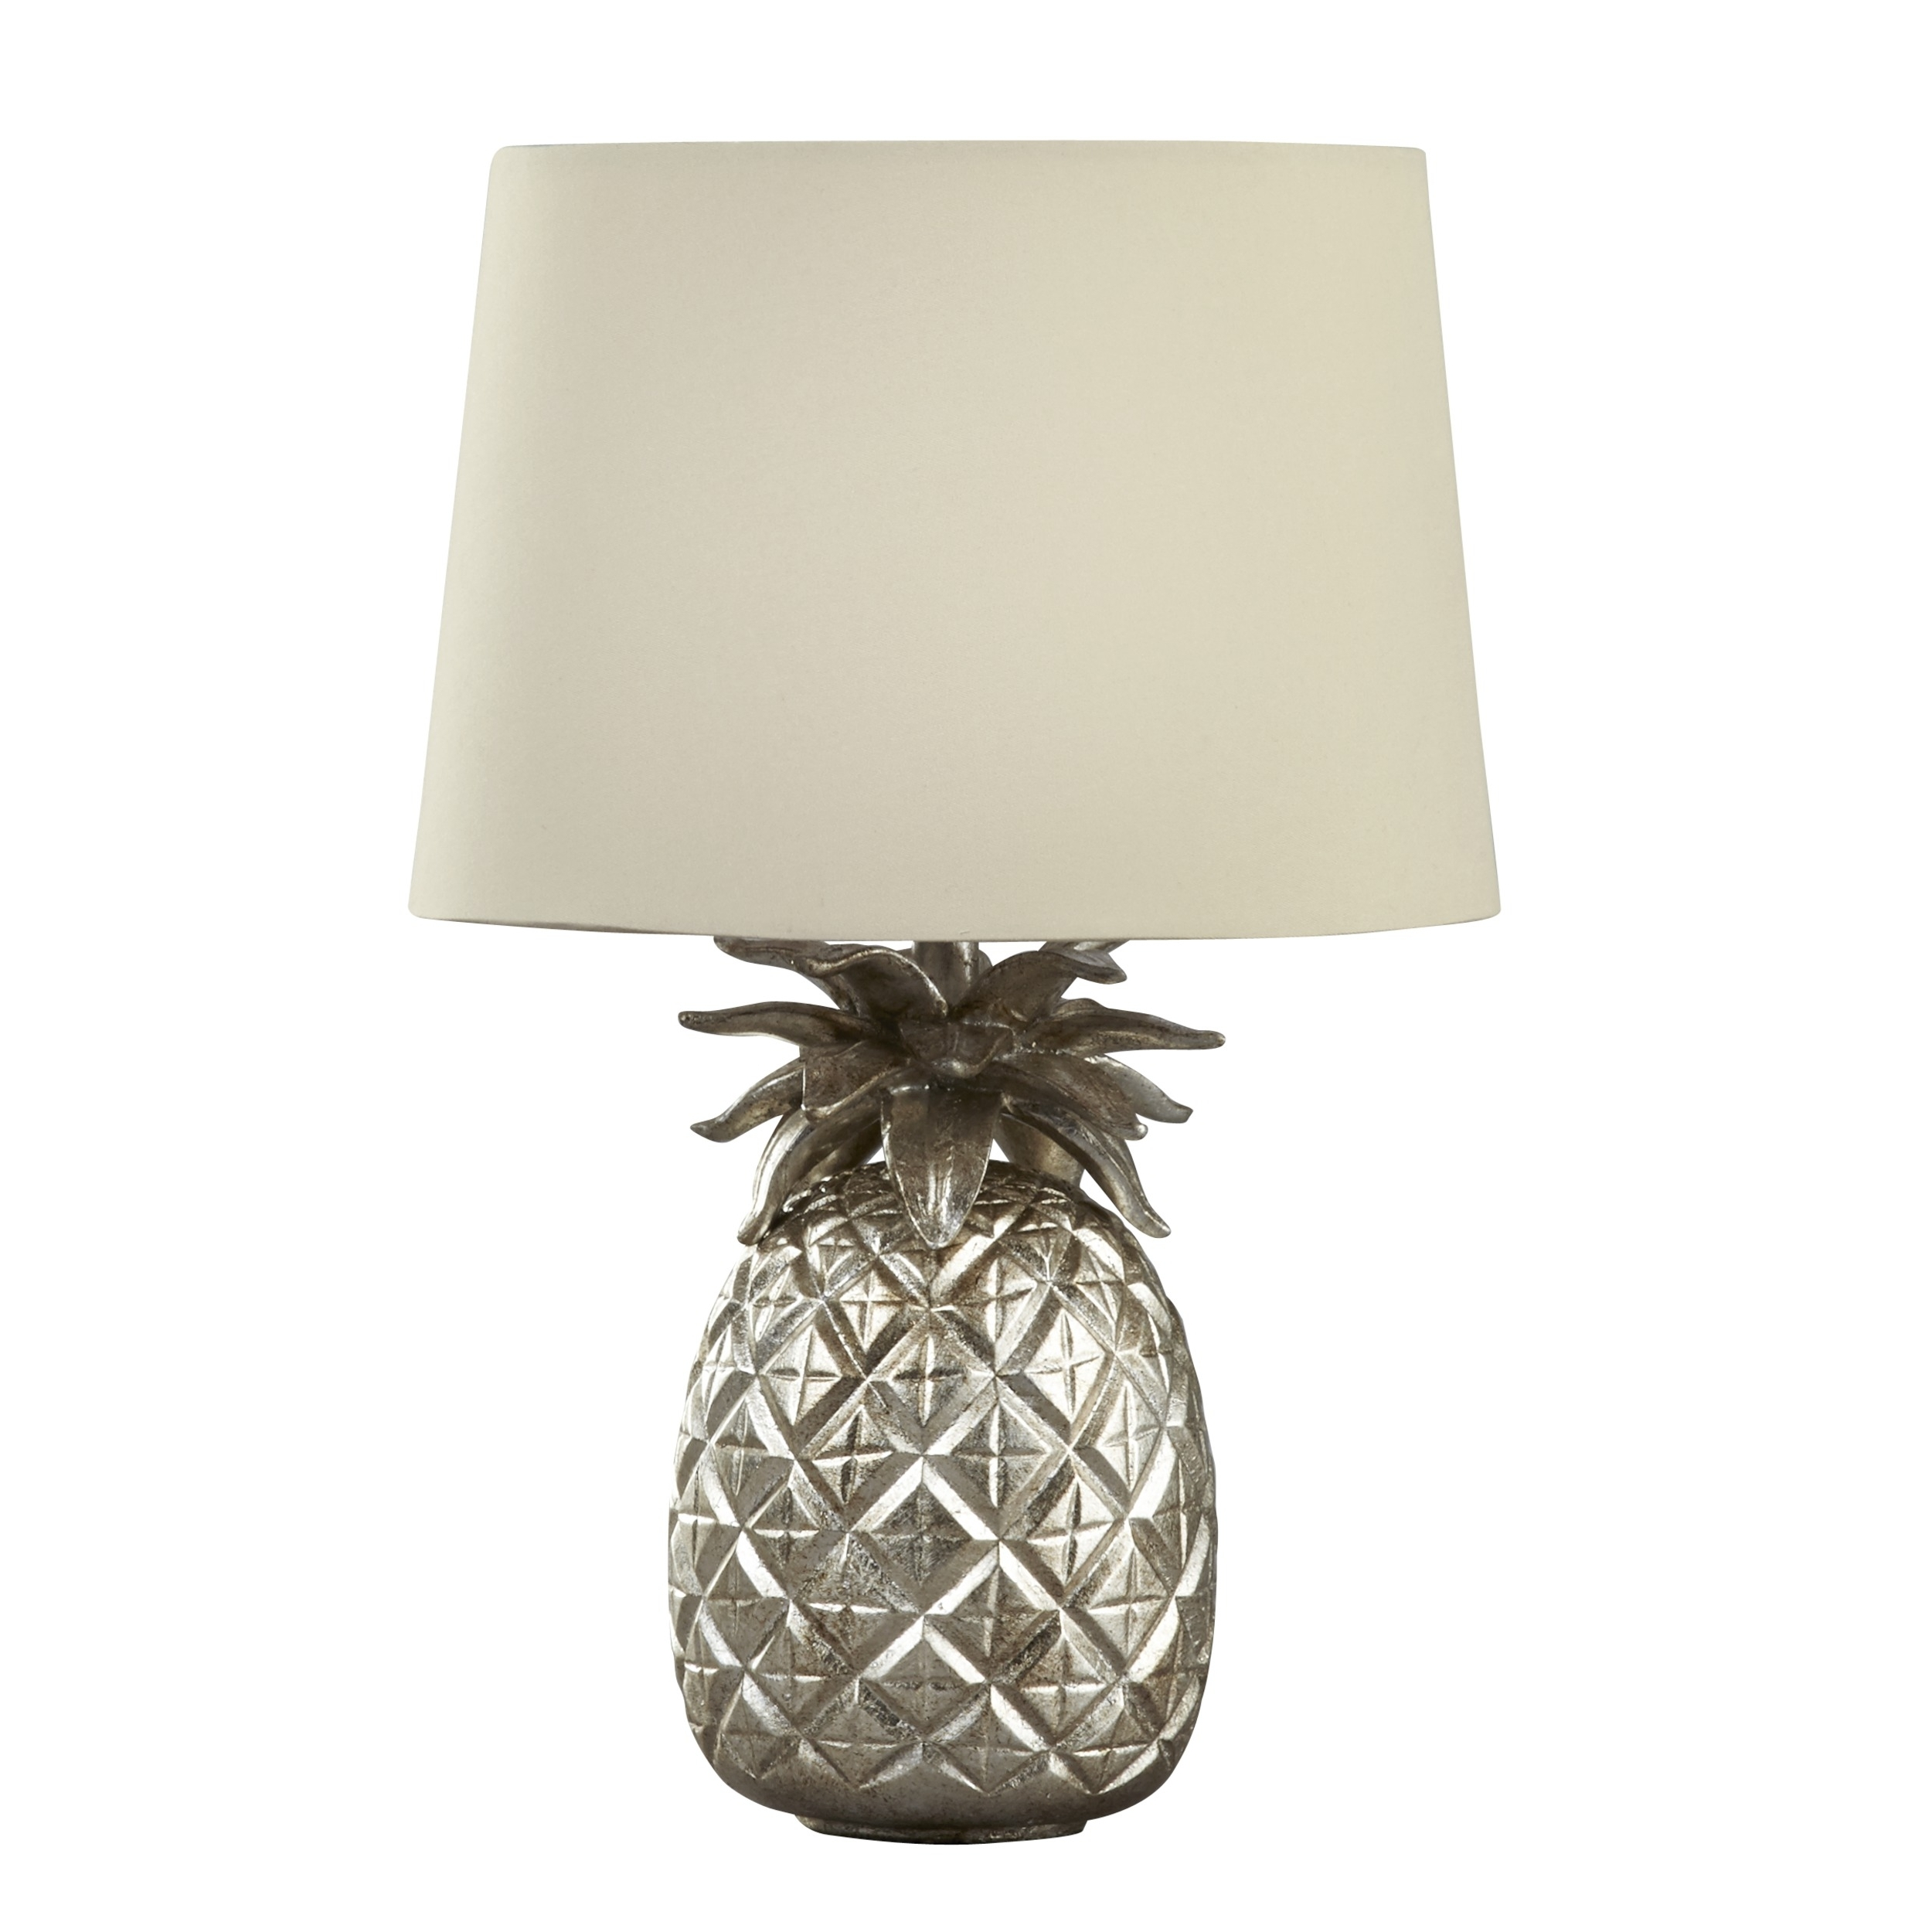 Pineapple Outdoor Light – Outdoor Lighting Ideas Pertaining To Newest Outdoor Pineapple Lanterns (View 14 of 20)